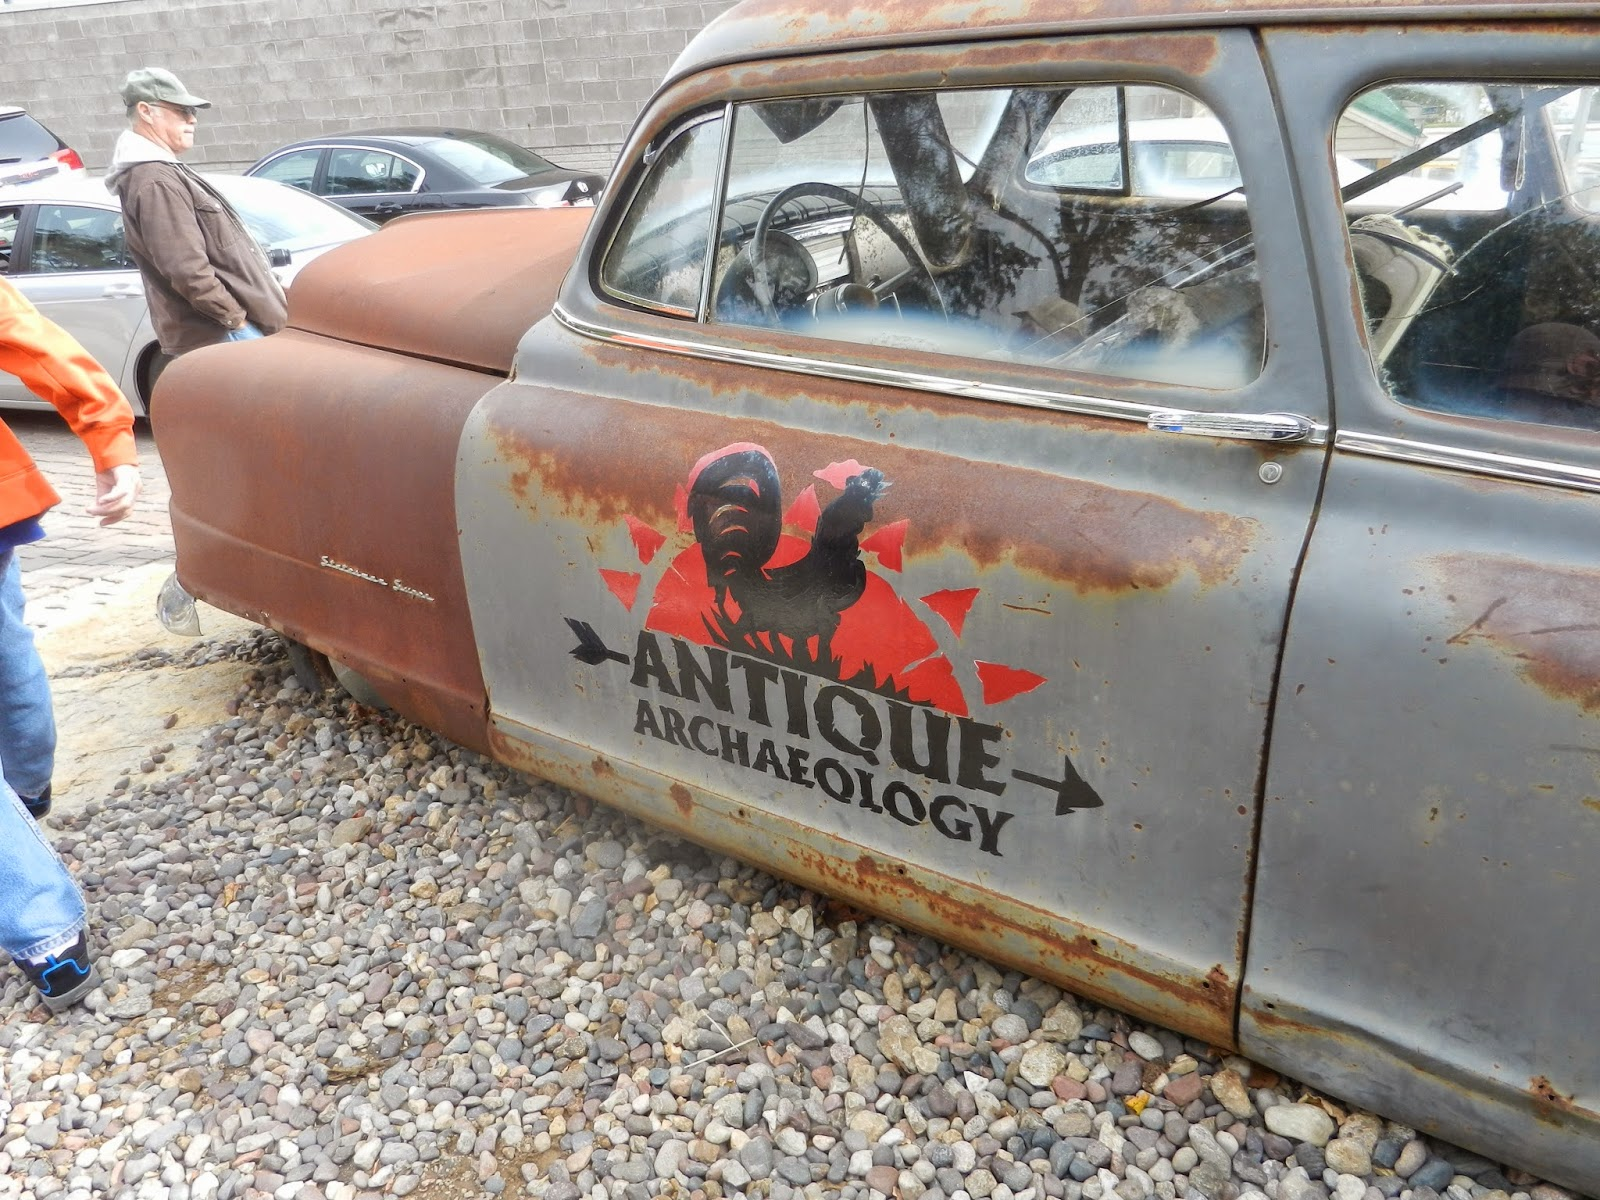 antique archeology american pickers shop